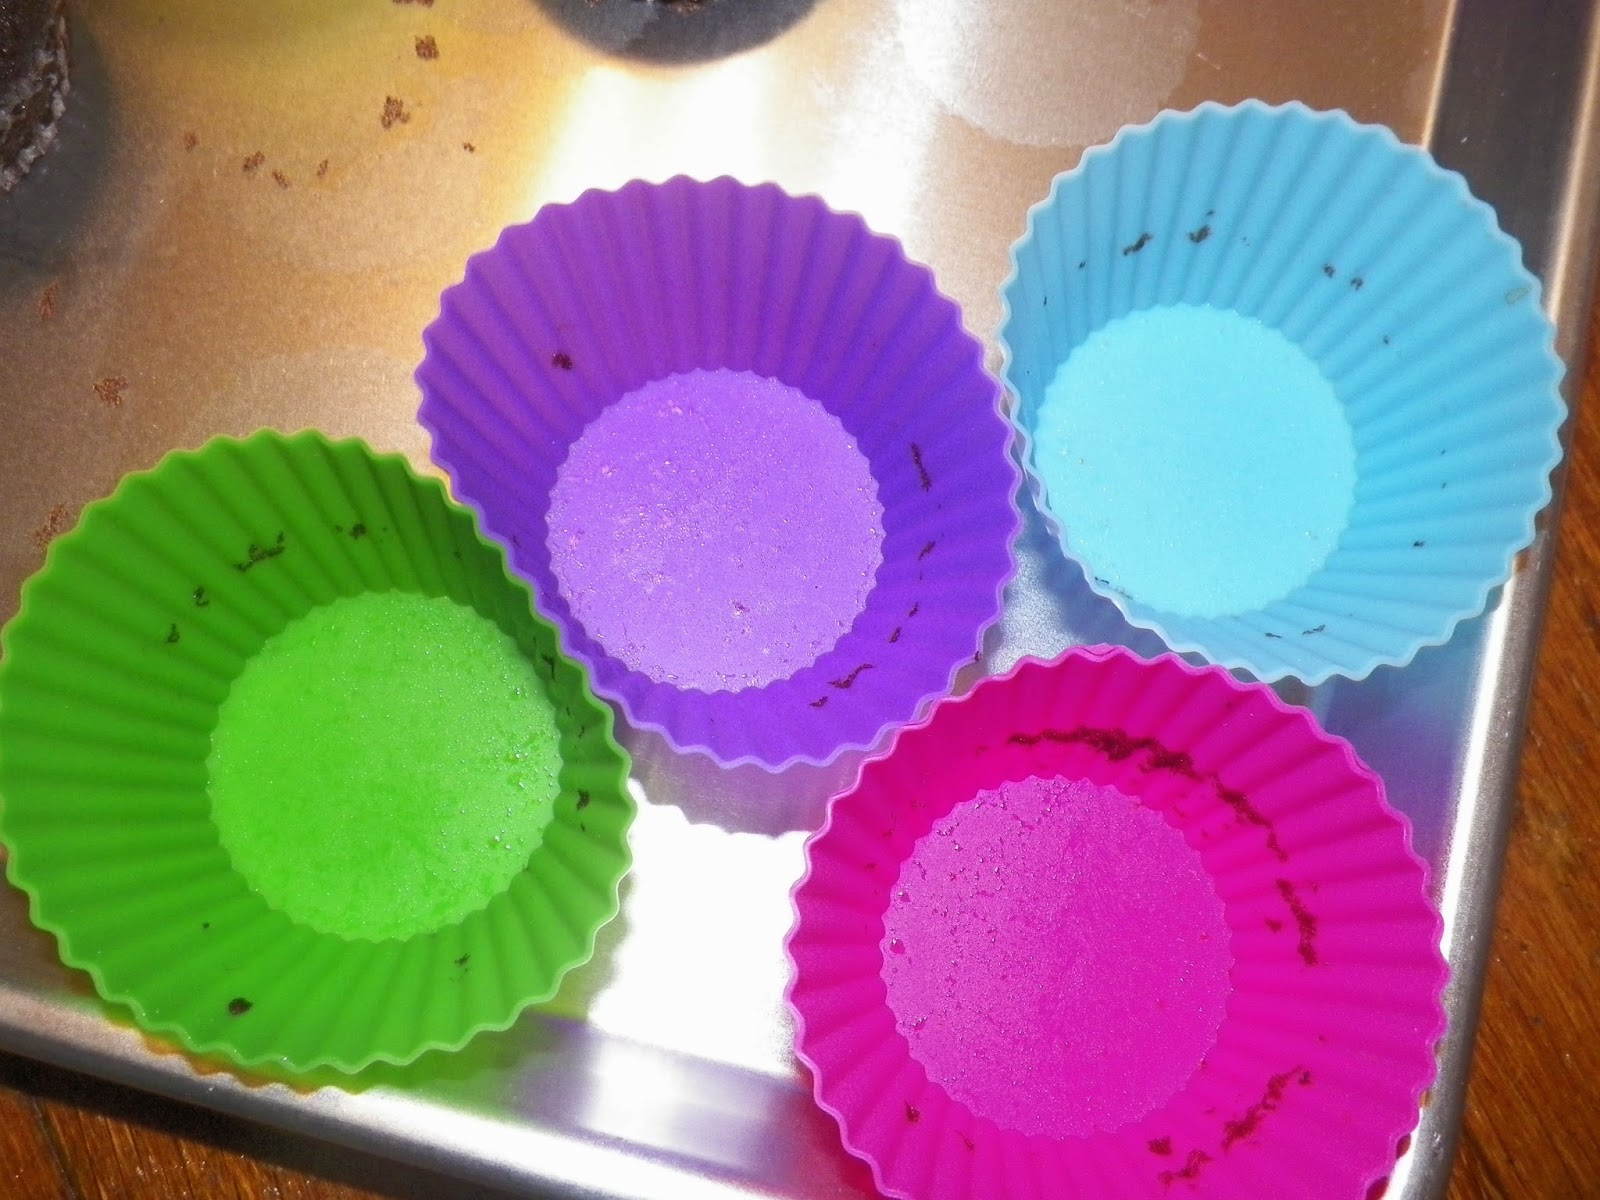 Prime_Kitchen_Silicone_Baking_Cups.jpg